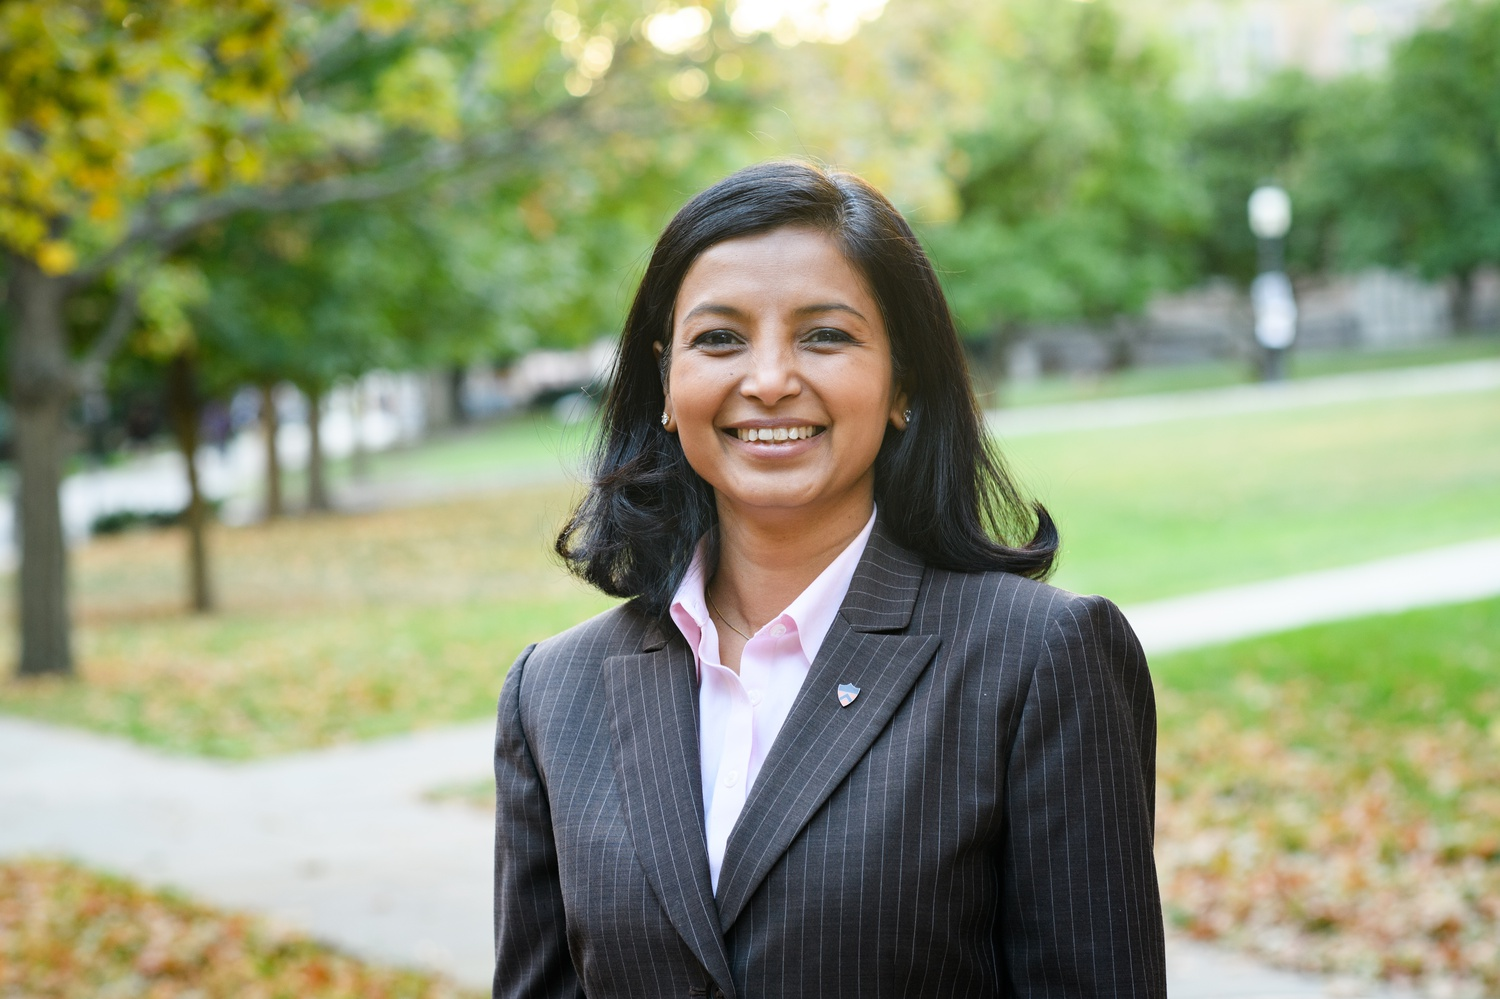 Smitha S. H. Haneef will serve as the new Managing Director for Harvard University Dining Services.